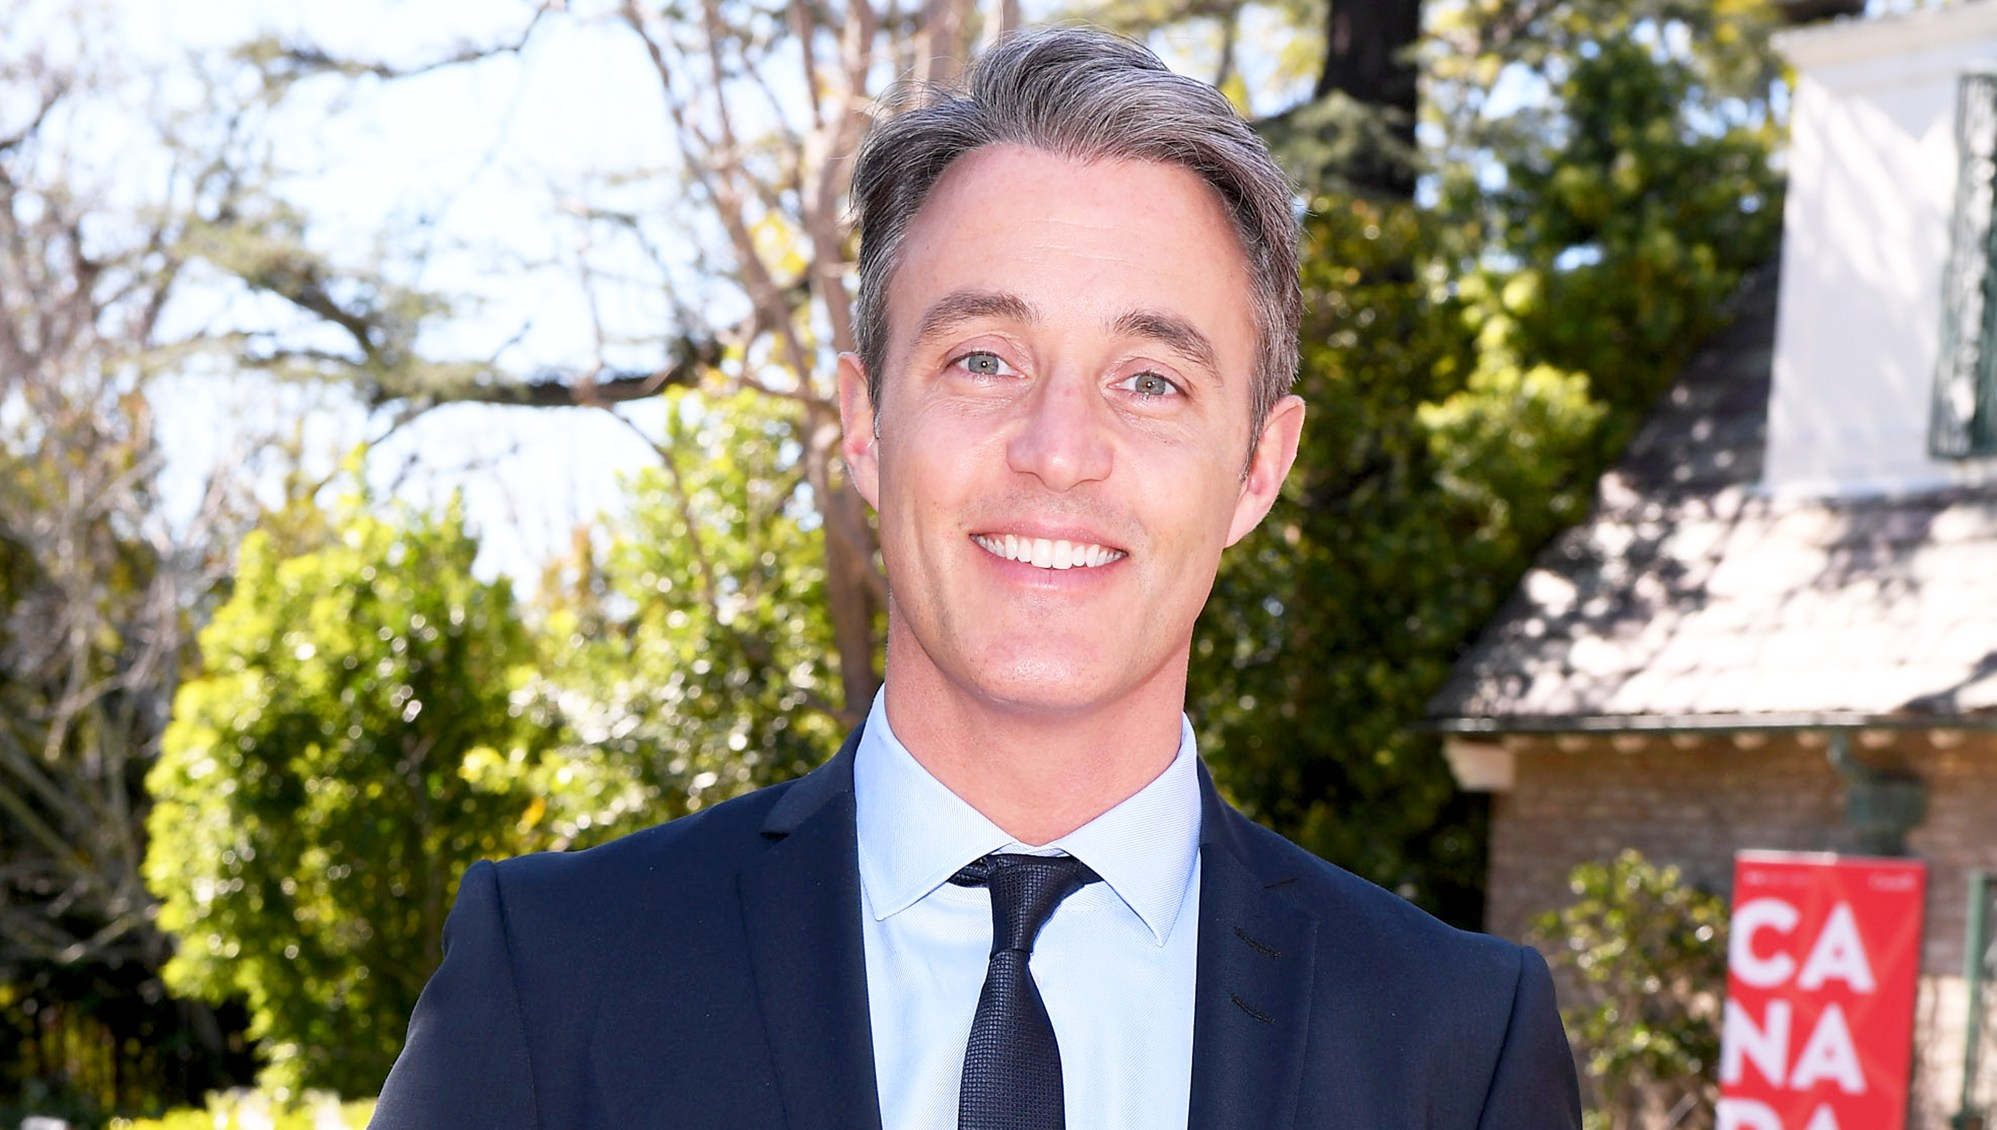 Ben Mulroney attends the Canadian Brunch Reception Honoring Canadian Nominees for the 2017 Academy Awards and the Film Independent Spirit Awards in Los Angeles.